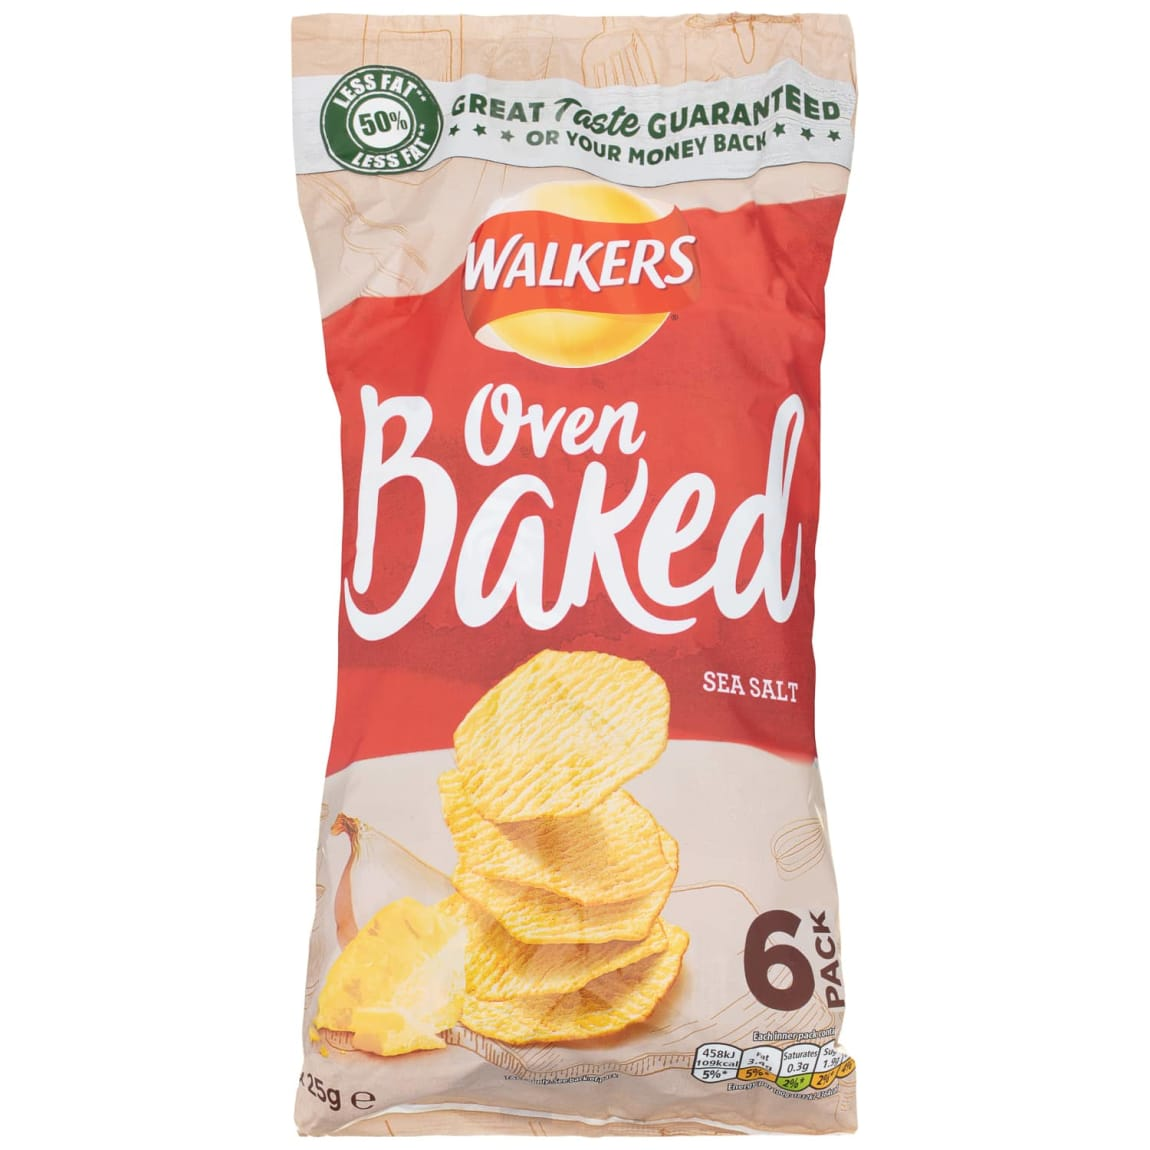 Walkers Oven Baked Crisps 6pk - Sea Salt